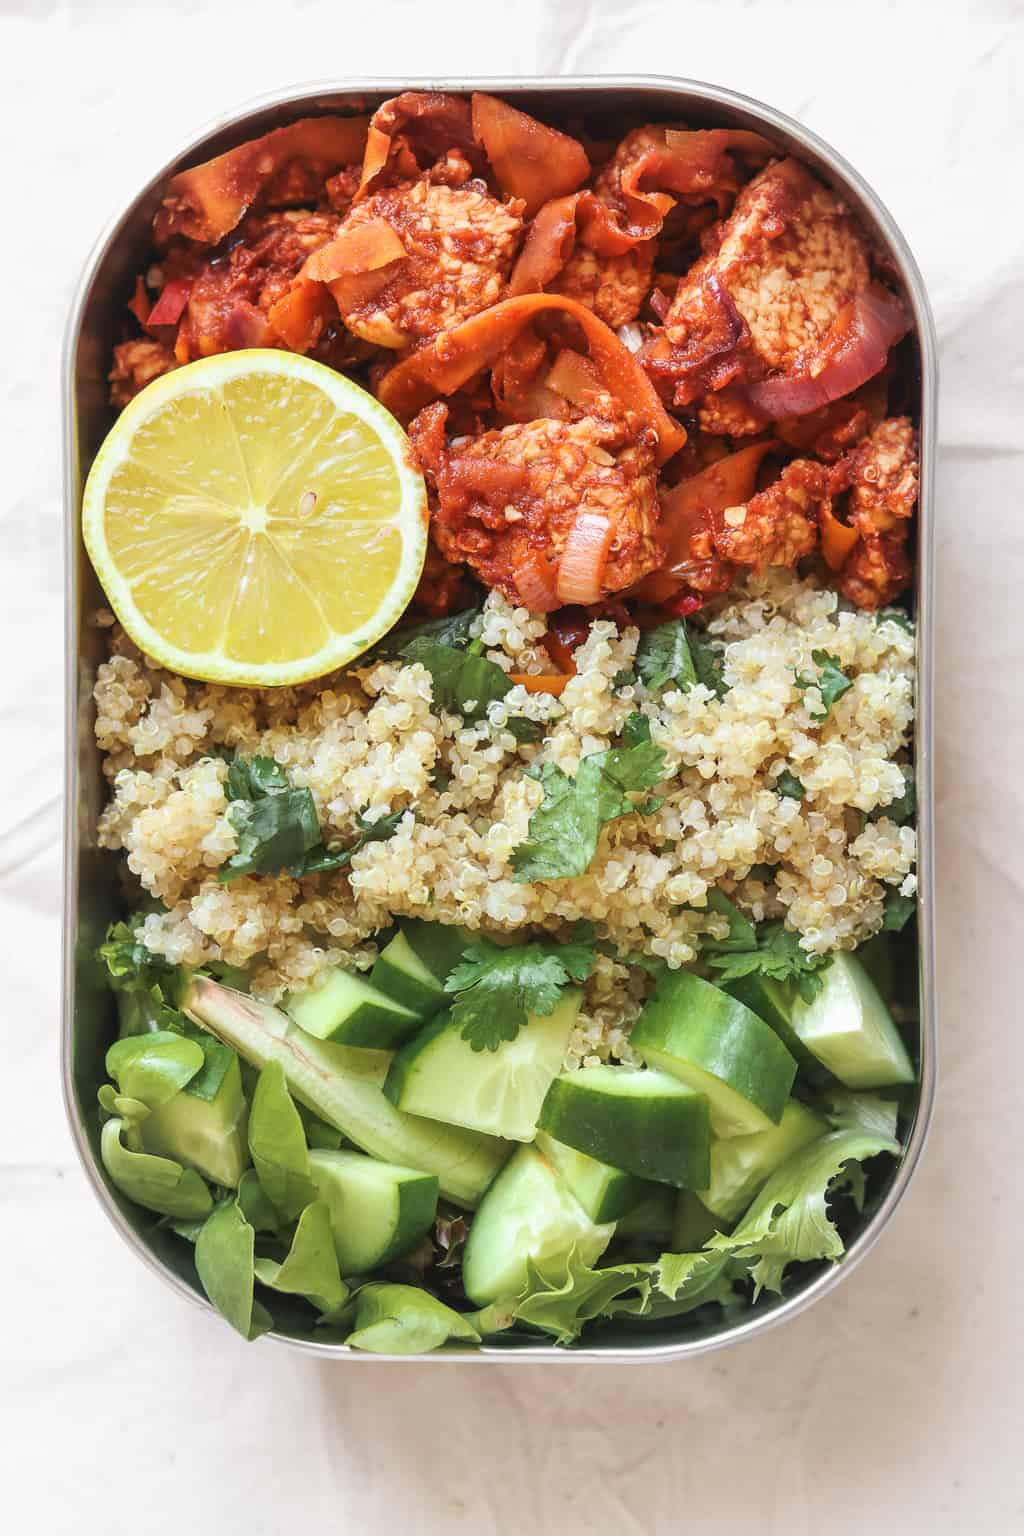 Vegan meal prep lunchbox with quinoa and tempeh in a tomato sauce